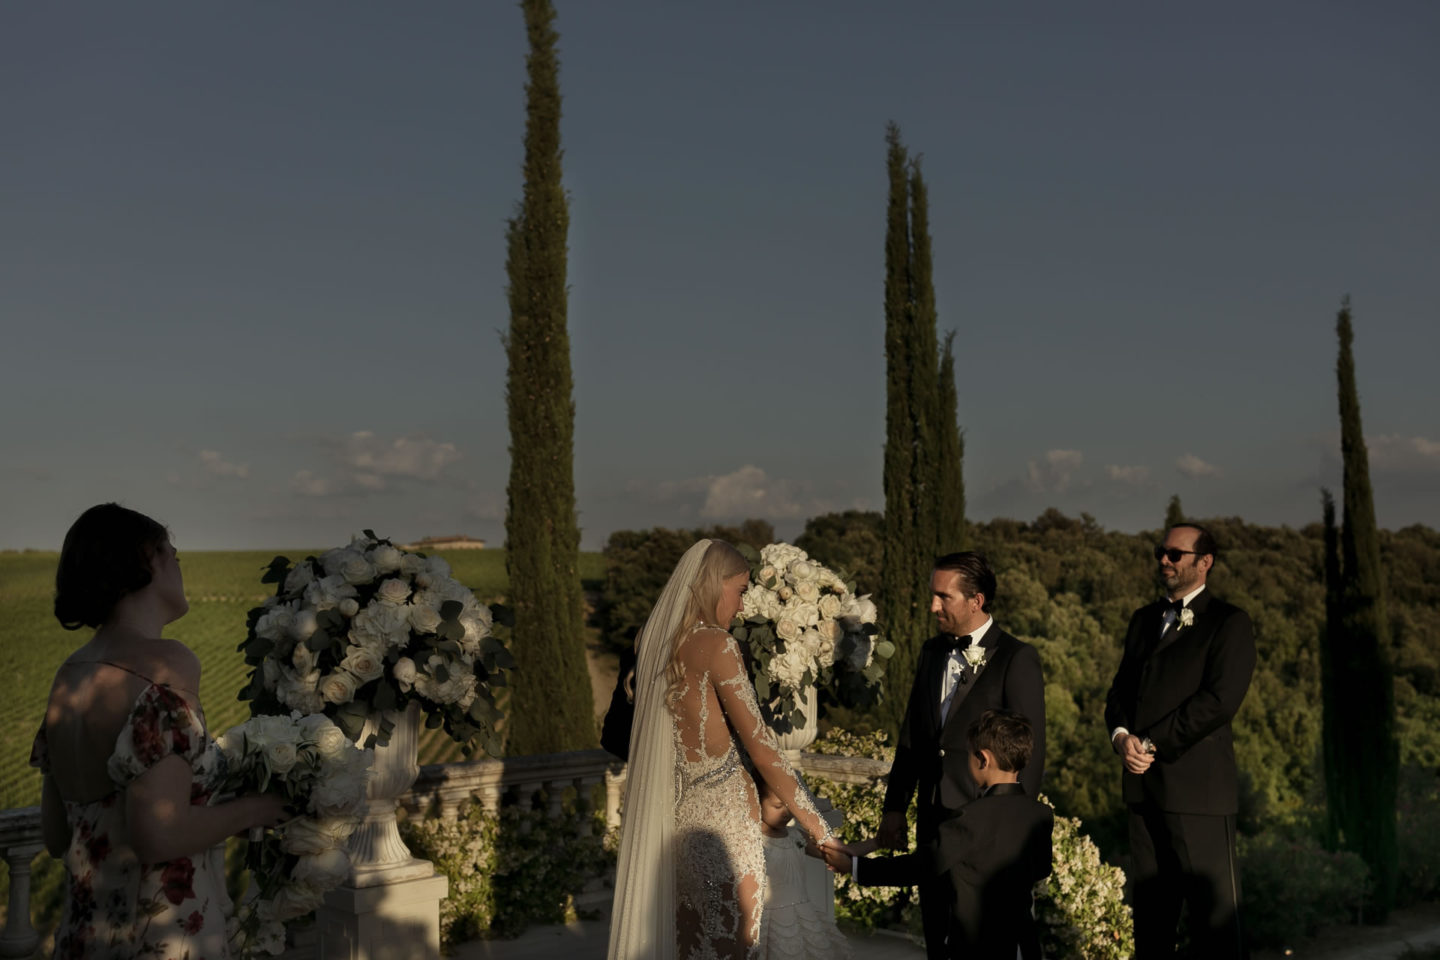 Tuscany - 40 :: Exciting wedding in the countryside of Siena :: Luxury wedding photography - 39 :: Tuscany - 40